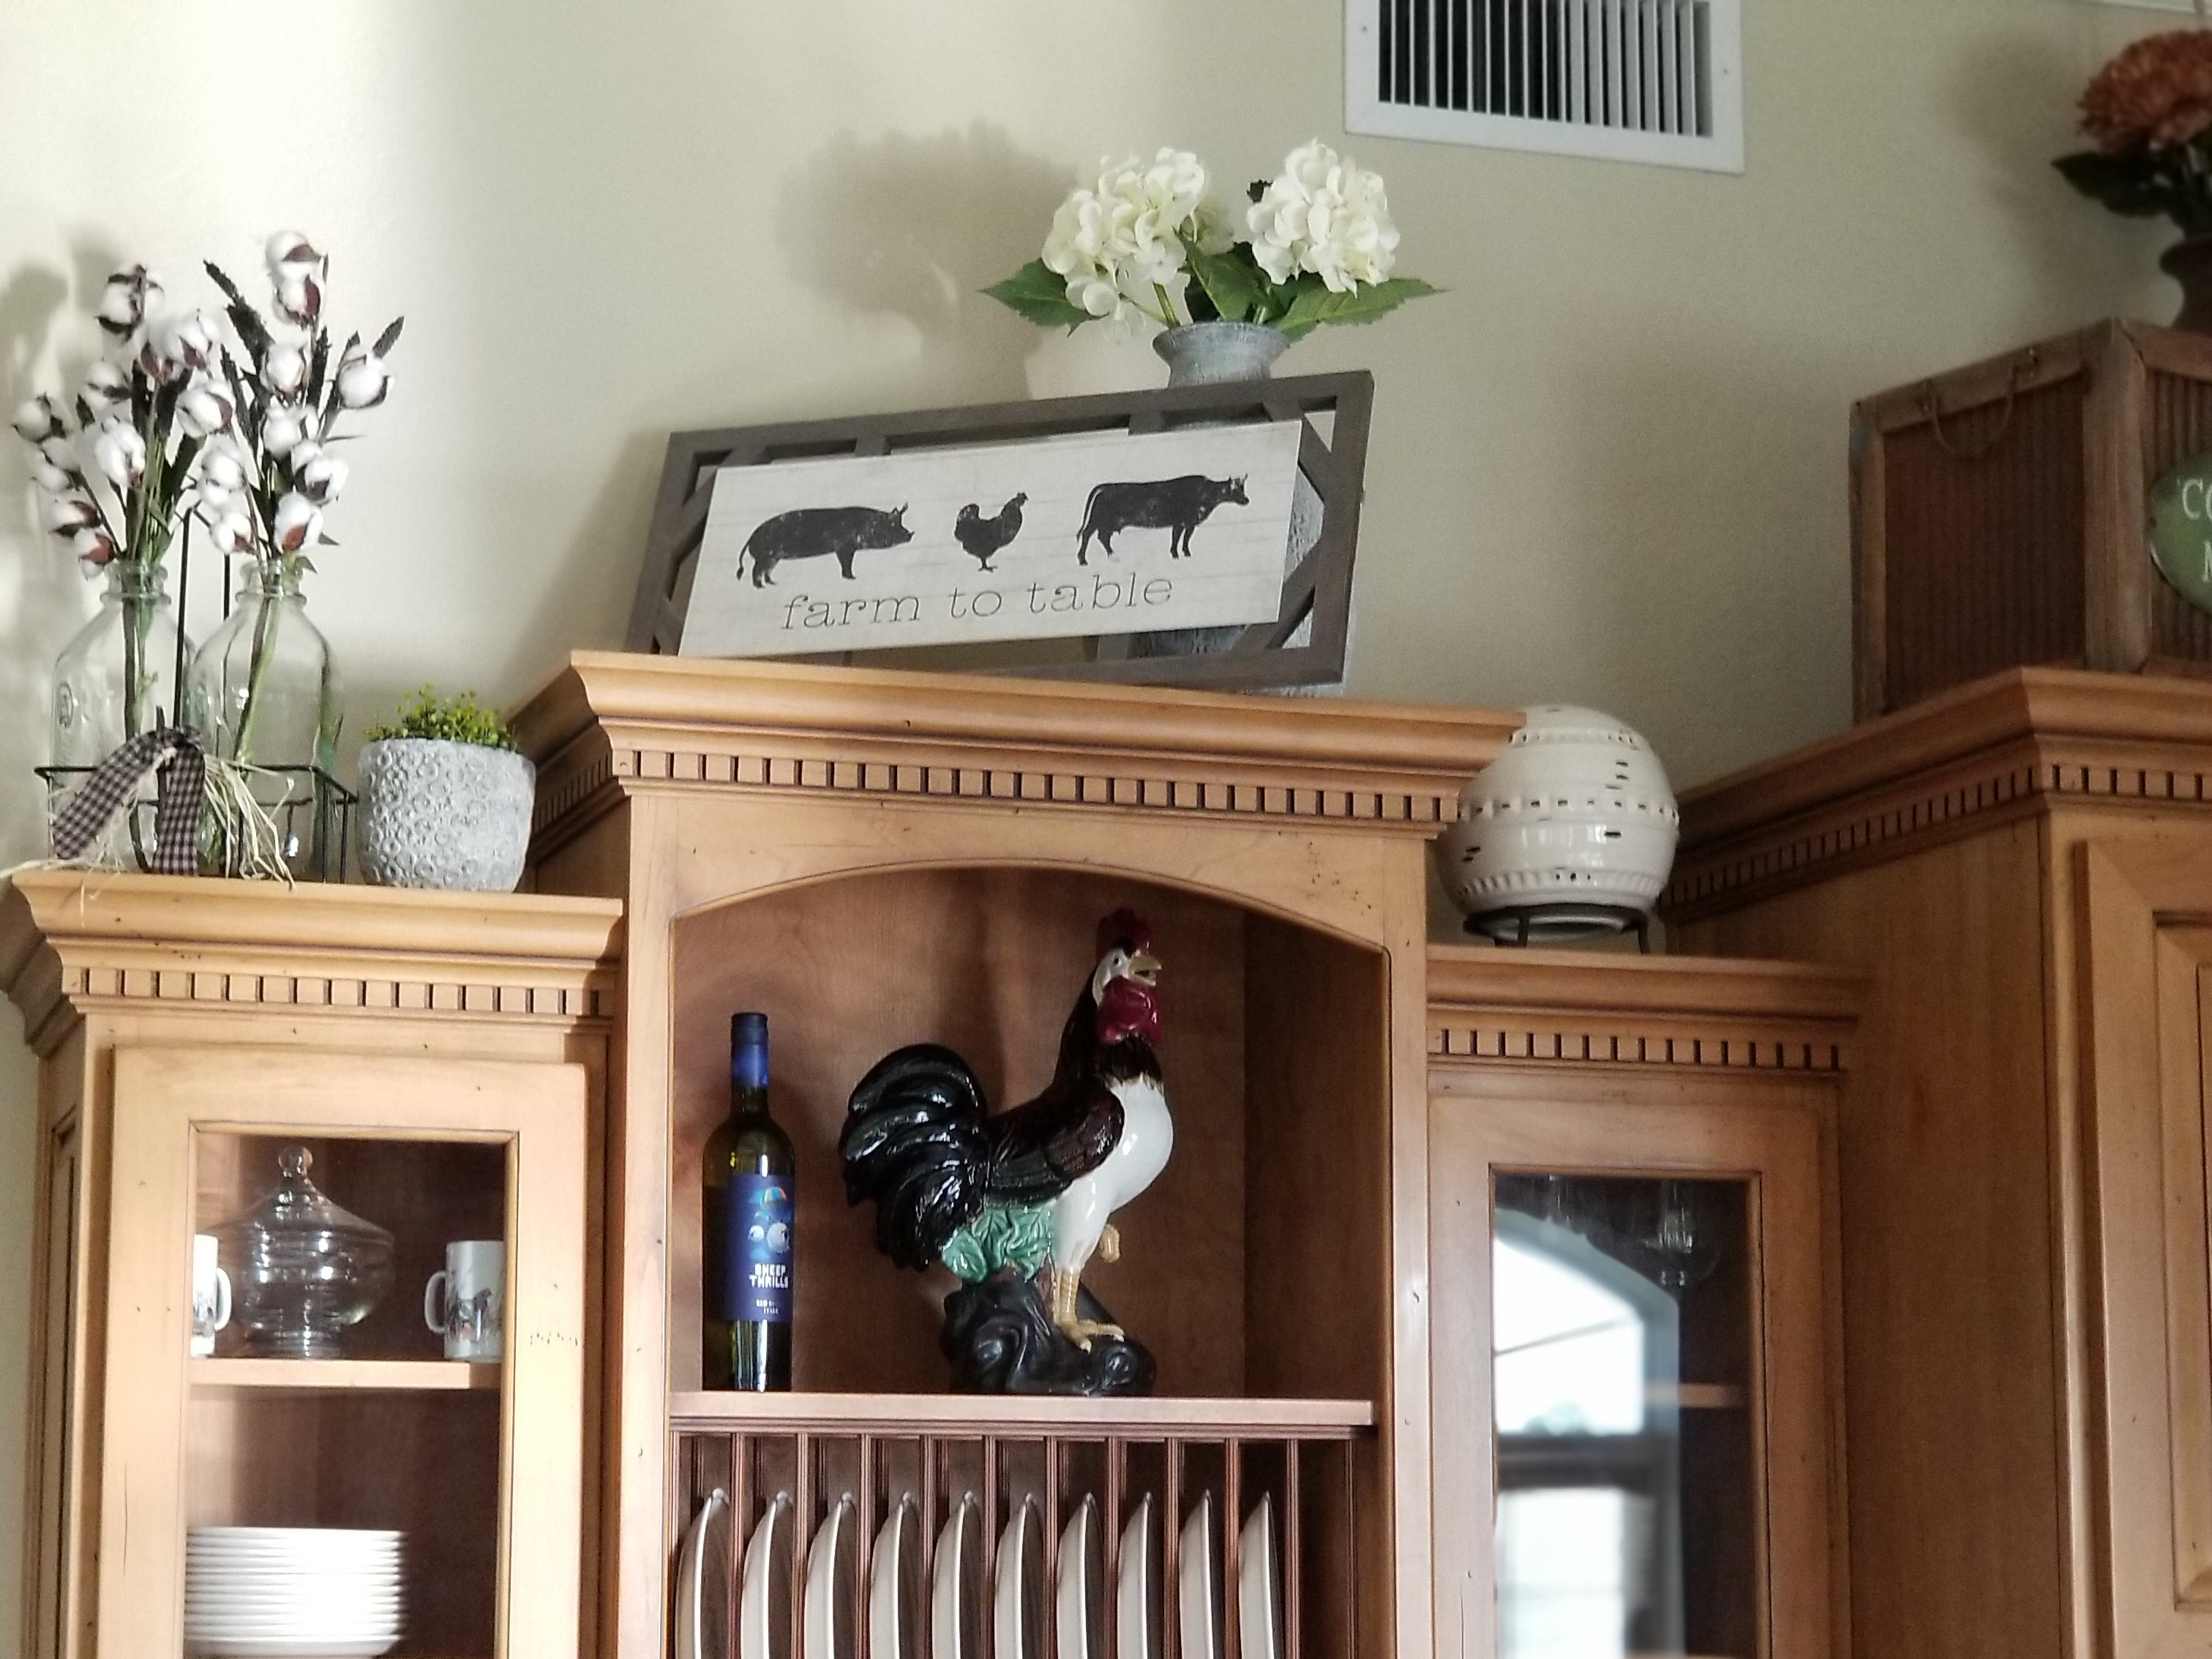 Tastefully placed farm life décor provides eye candy and a yearning for any visitor to want to live on a farm.